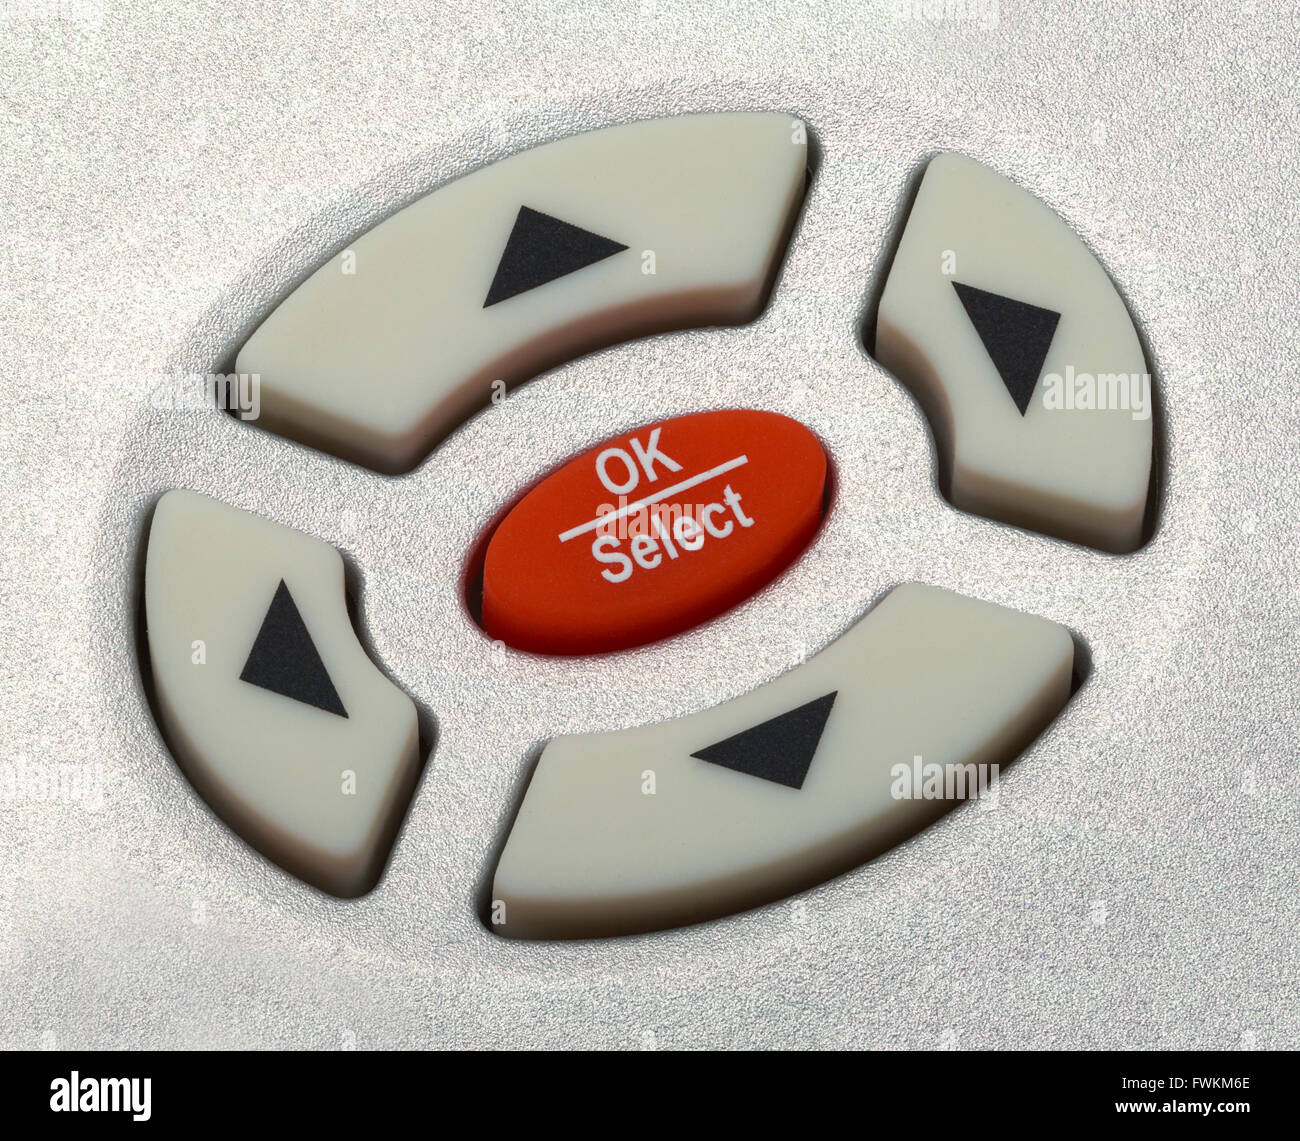 Close Up of Arrow Selection Buttons on Remote Control. - Stock Image